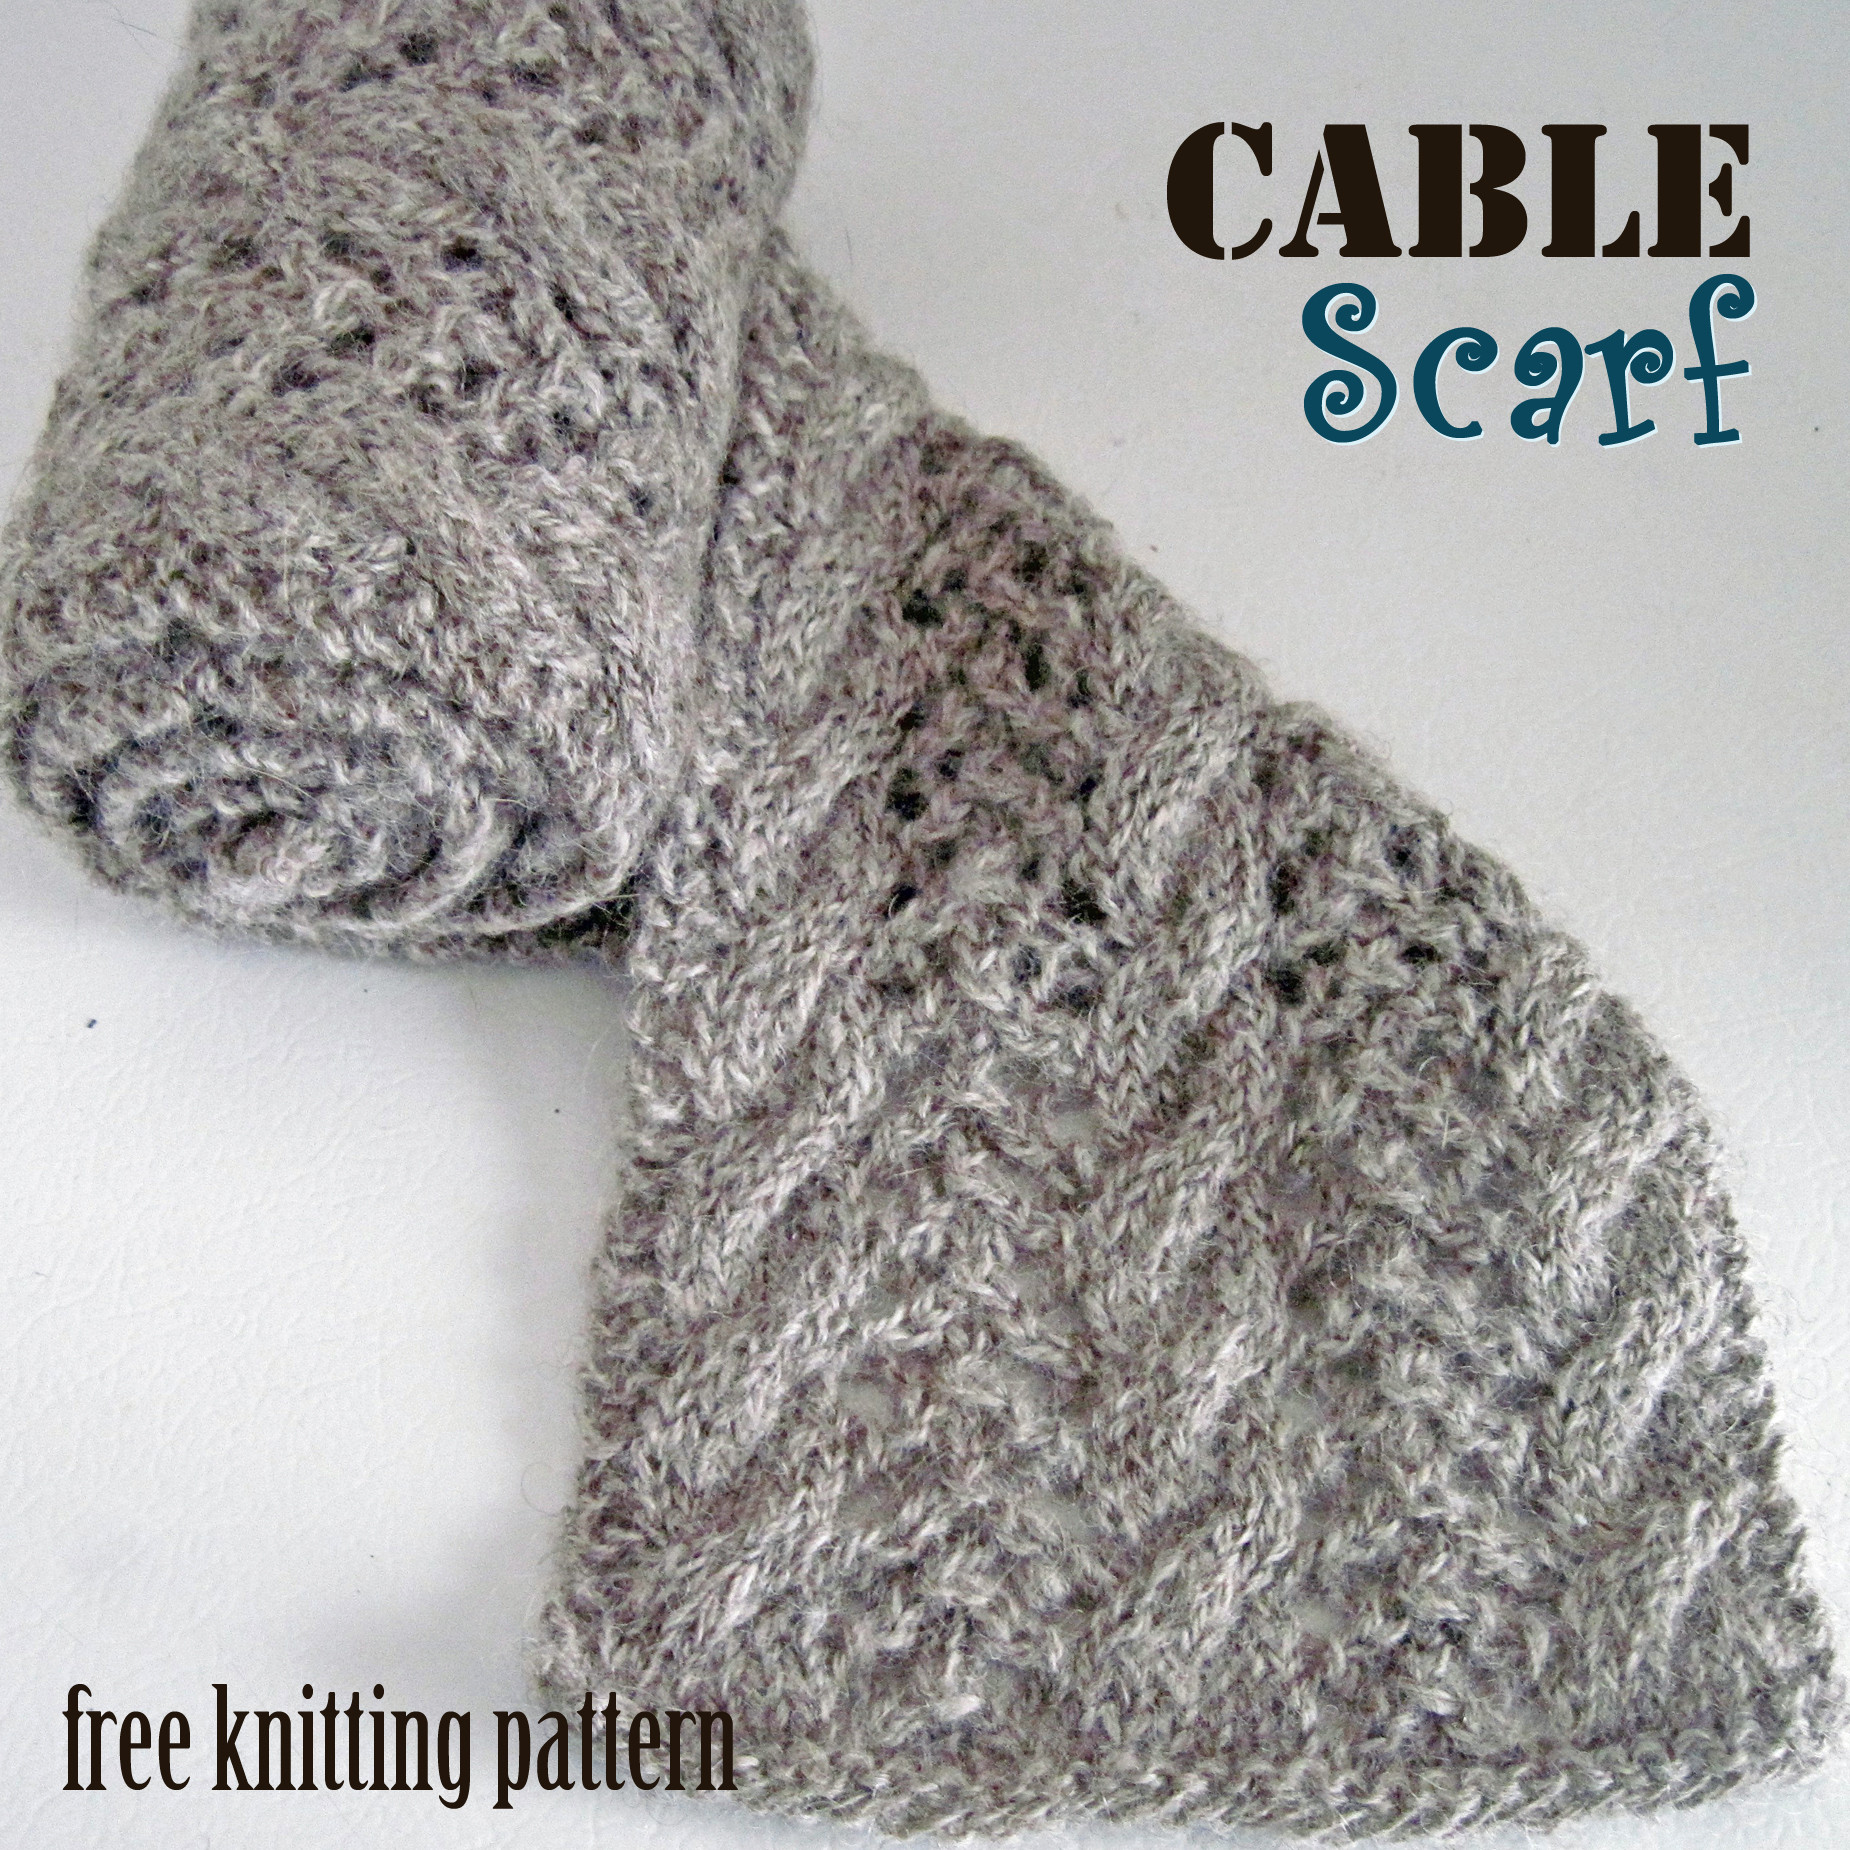 Inspirational Crochet Cable Stitch Scarf Pattern Crochet and Knit Cable Knit Scarf Of Delightful 48 Ideas Cable Knit Scarf